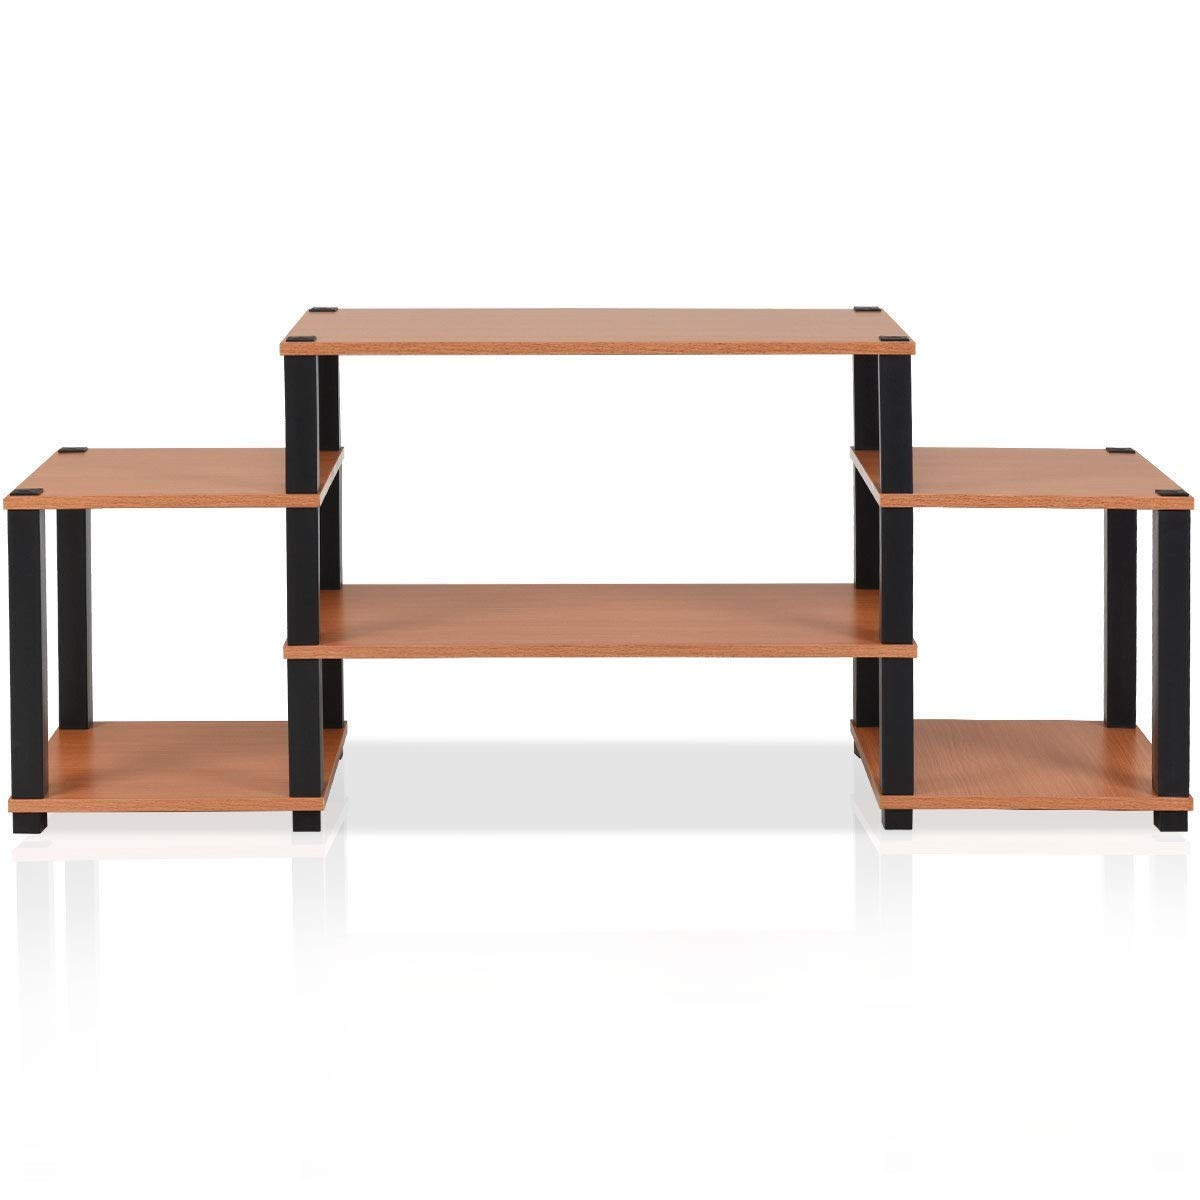 KING77777 Durable and Sturdy Construction 57'' L TV Stand Console Furniture Multi- Function Storage Organizer Cabinet by KING77777 (Image #1)